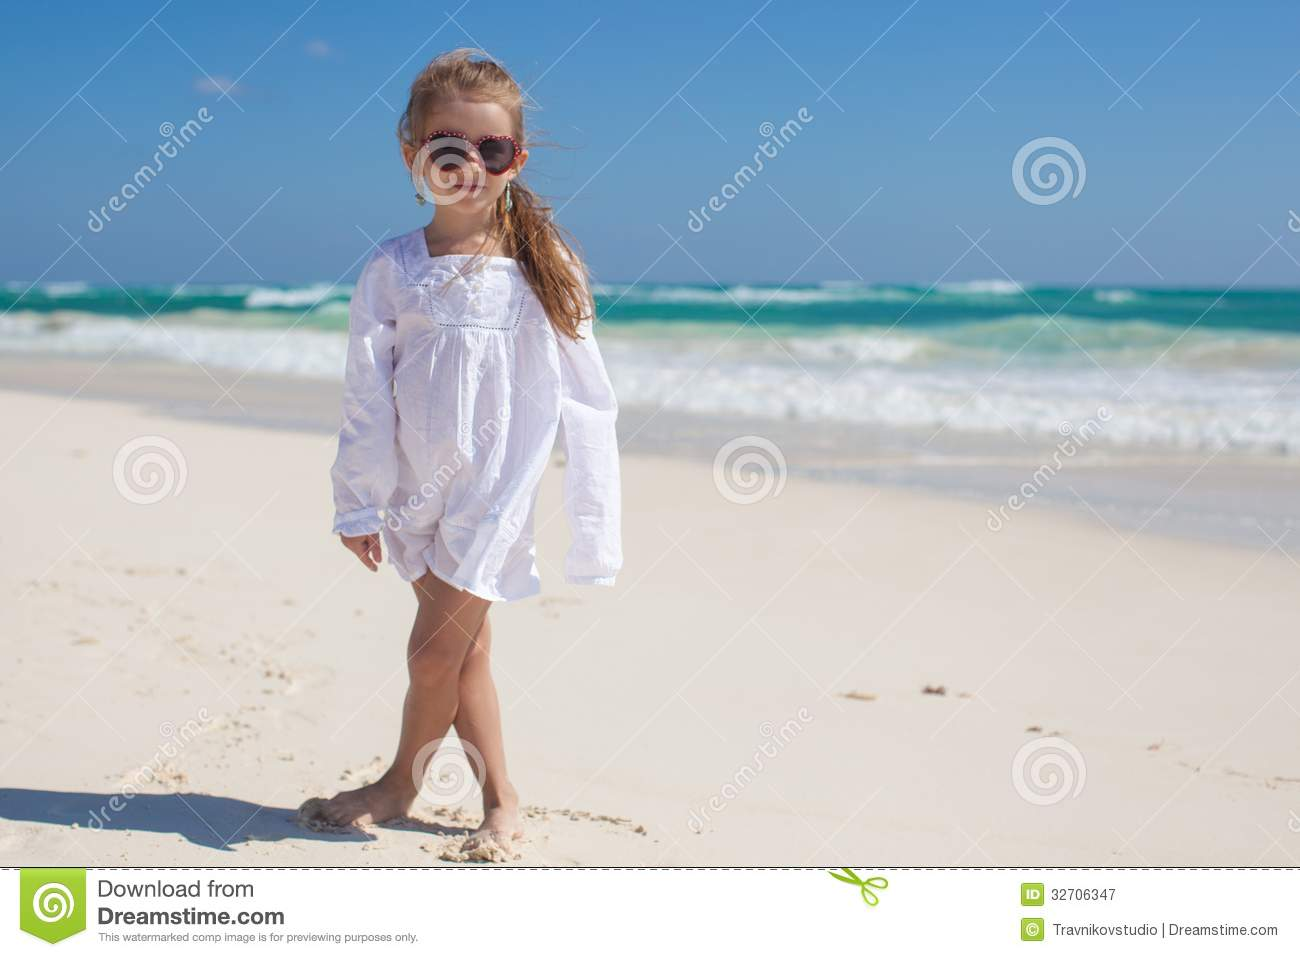 Toddler Girl In White Dress At Beach Stock Photography - Image ...